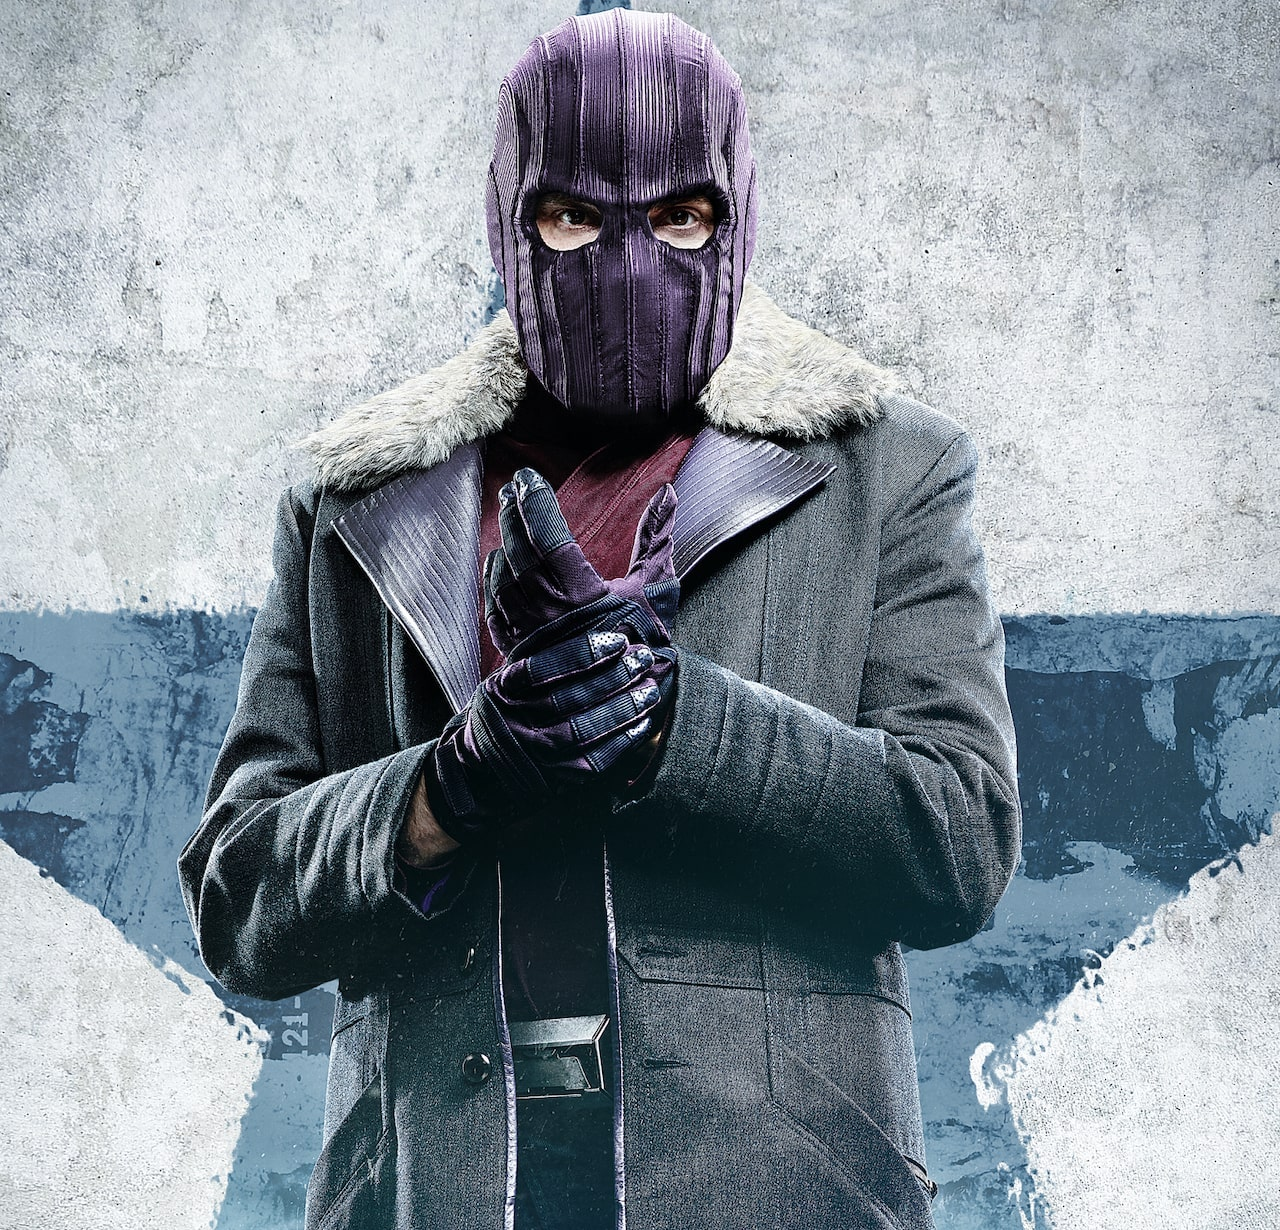 Shake off those 'WandaVision' blues with 'The Falcon and the Winter Soldier' posters